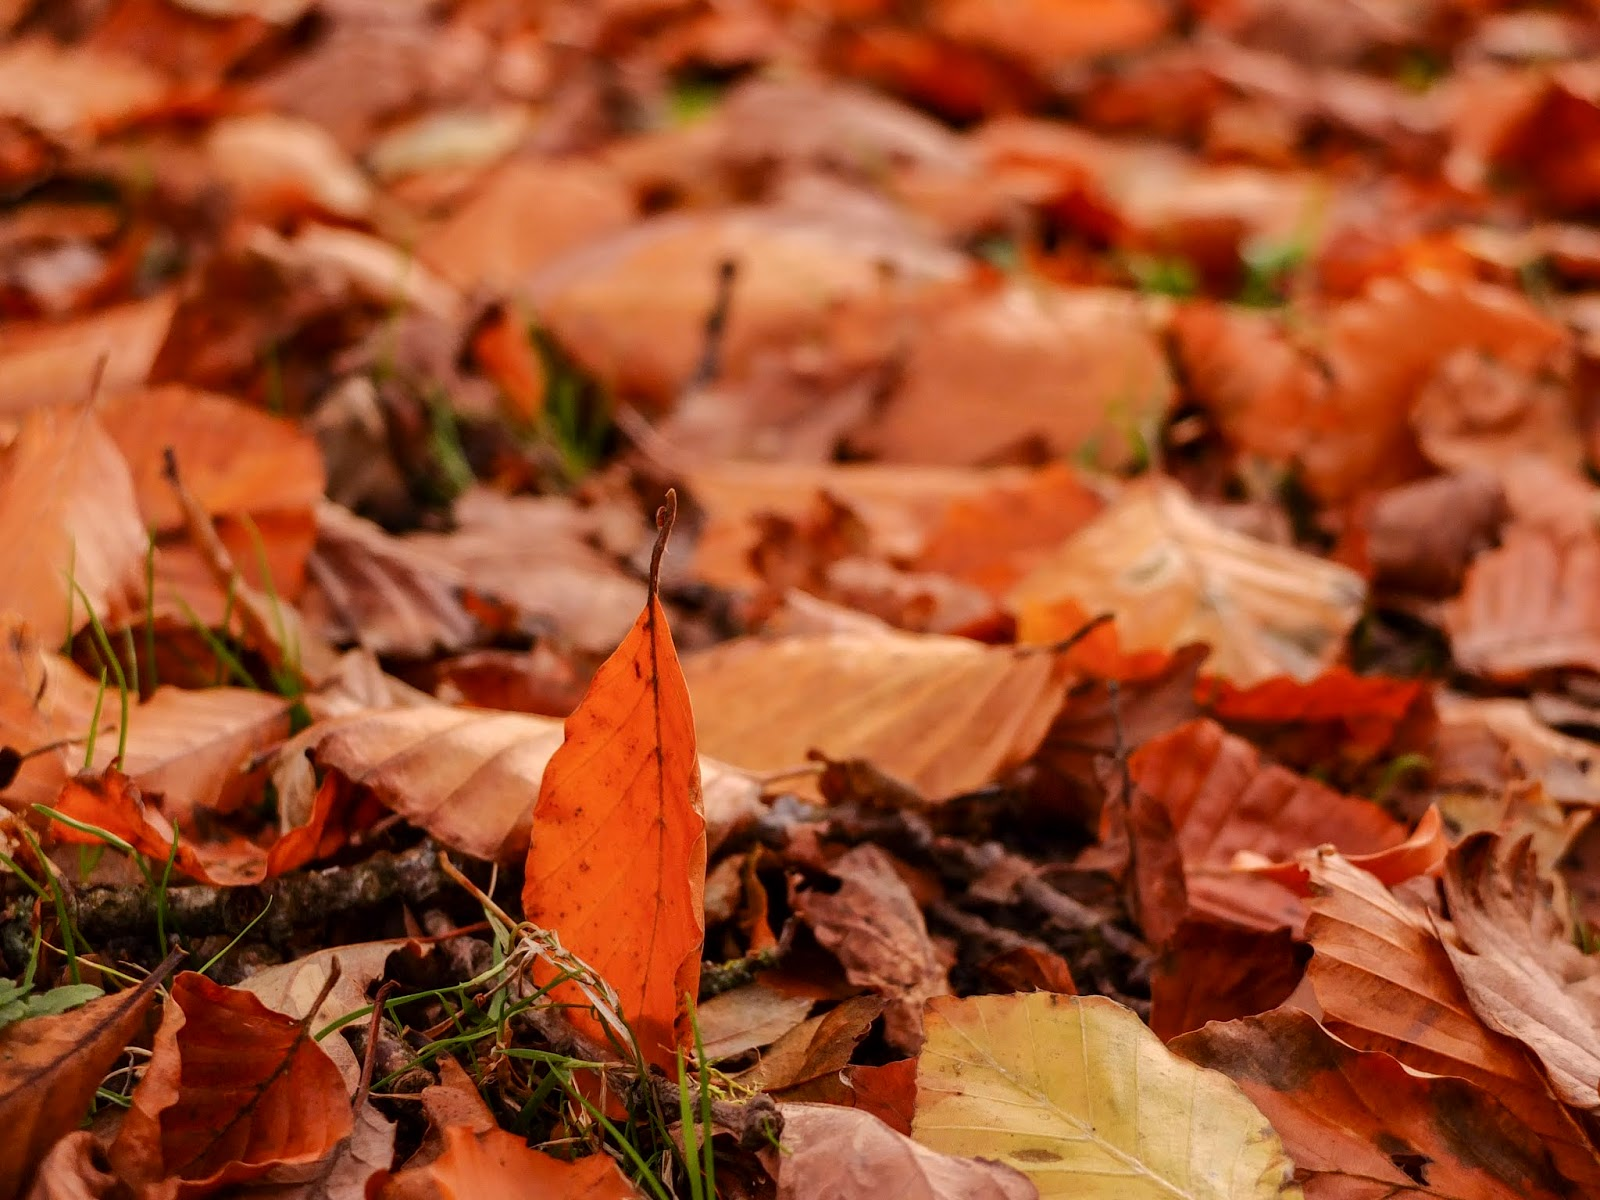 A red leaf standing up in grass among other fallen autumn leaves in North Cork.